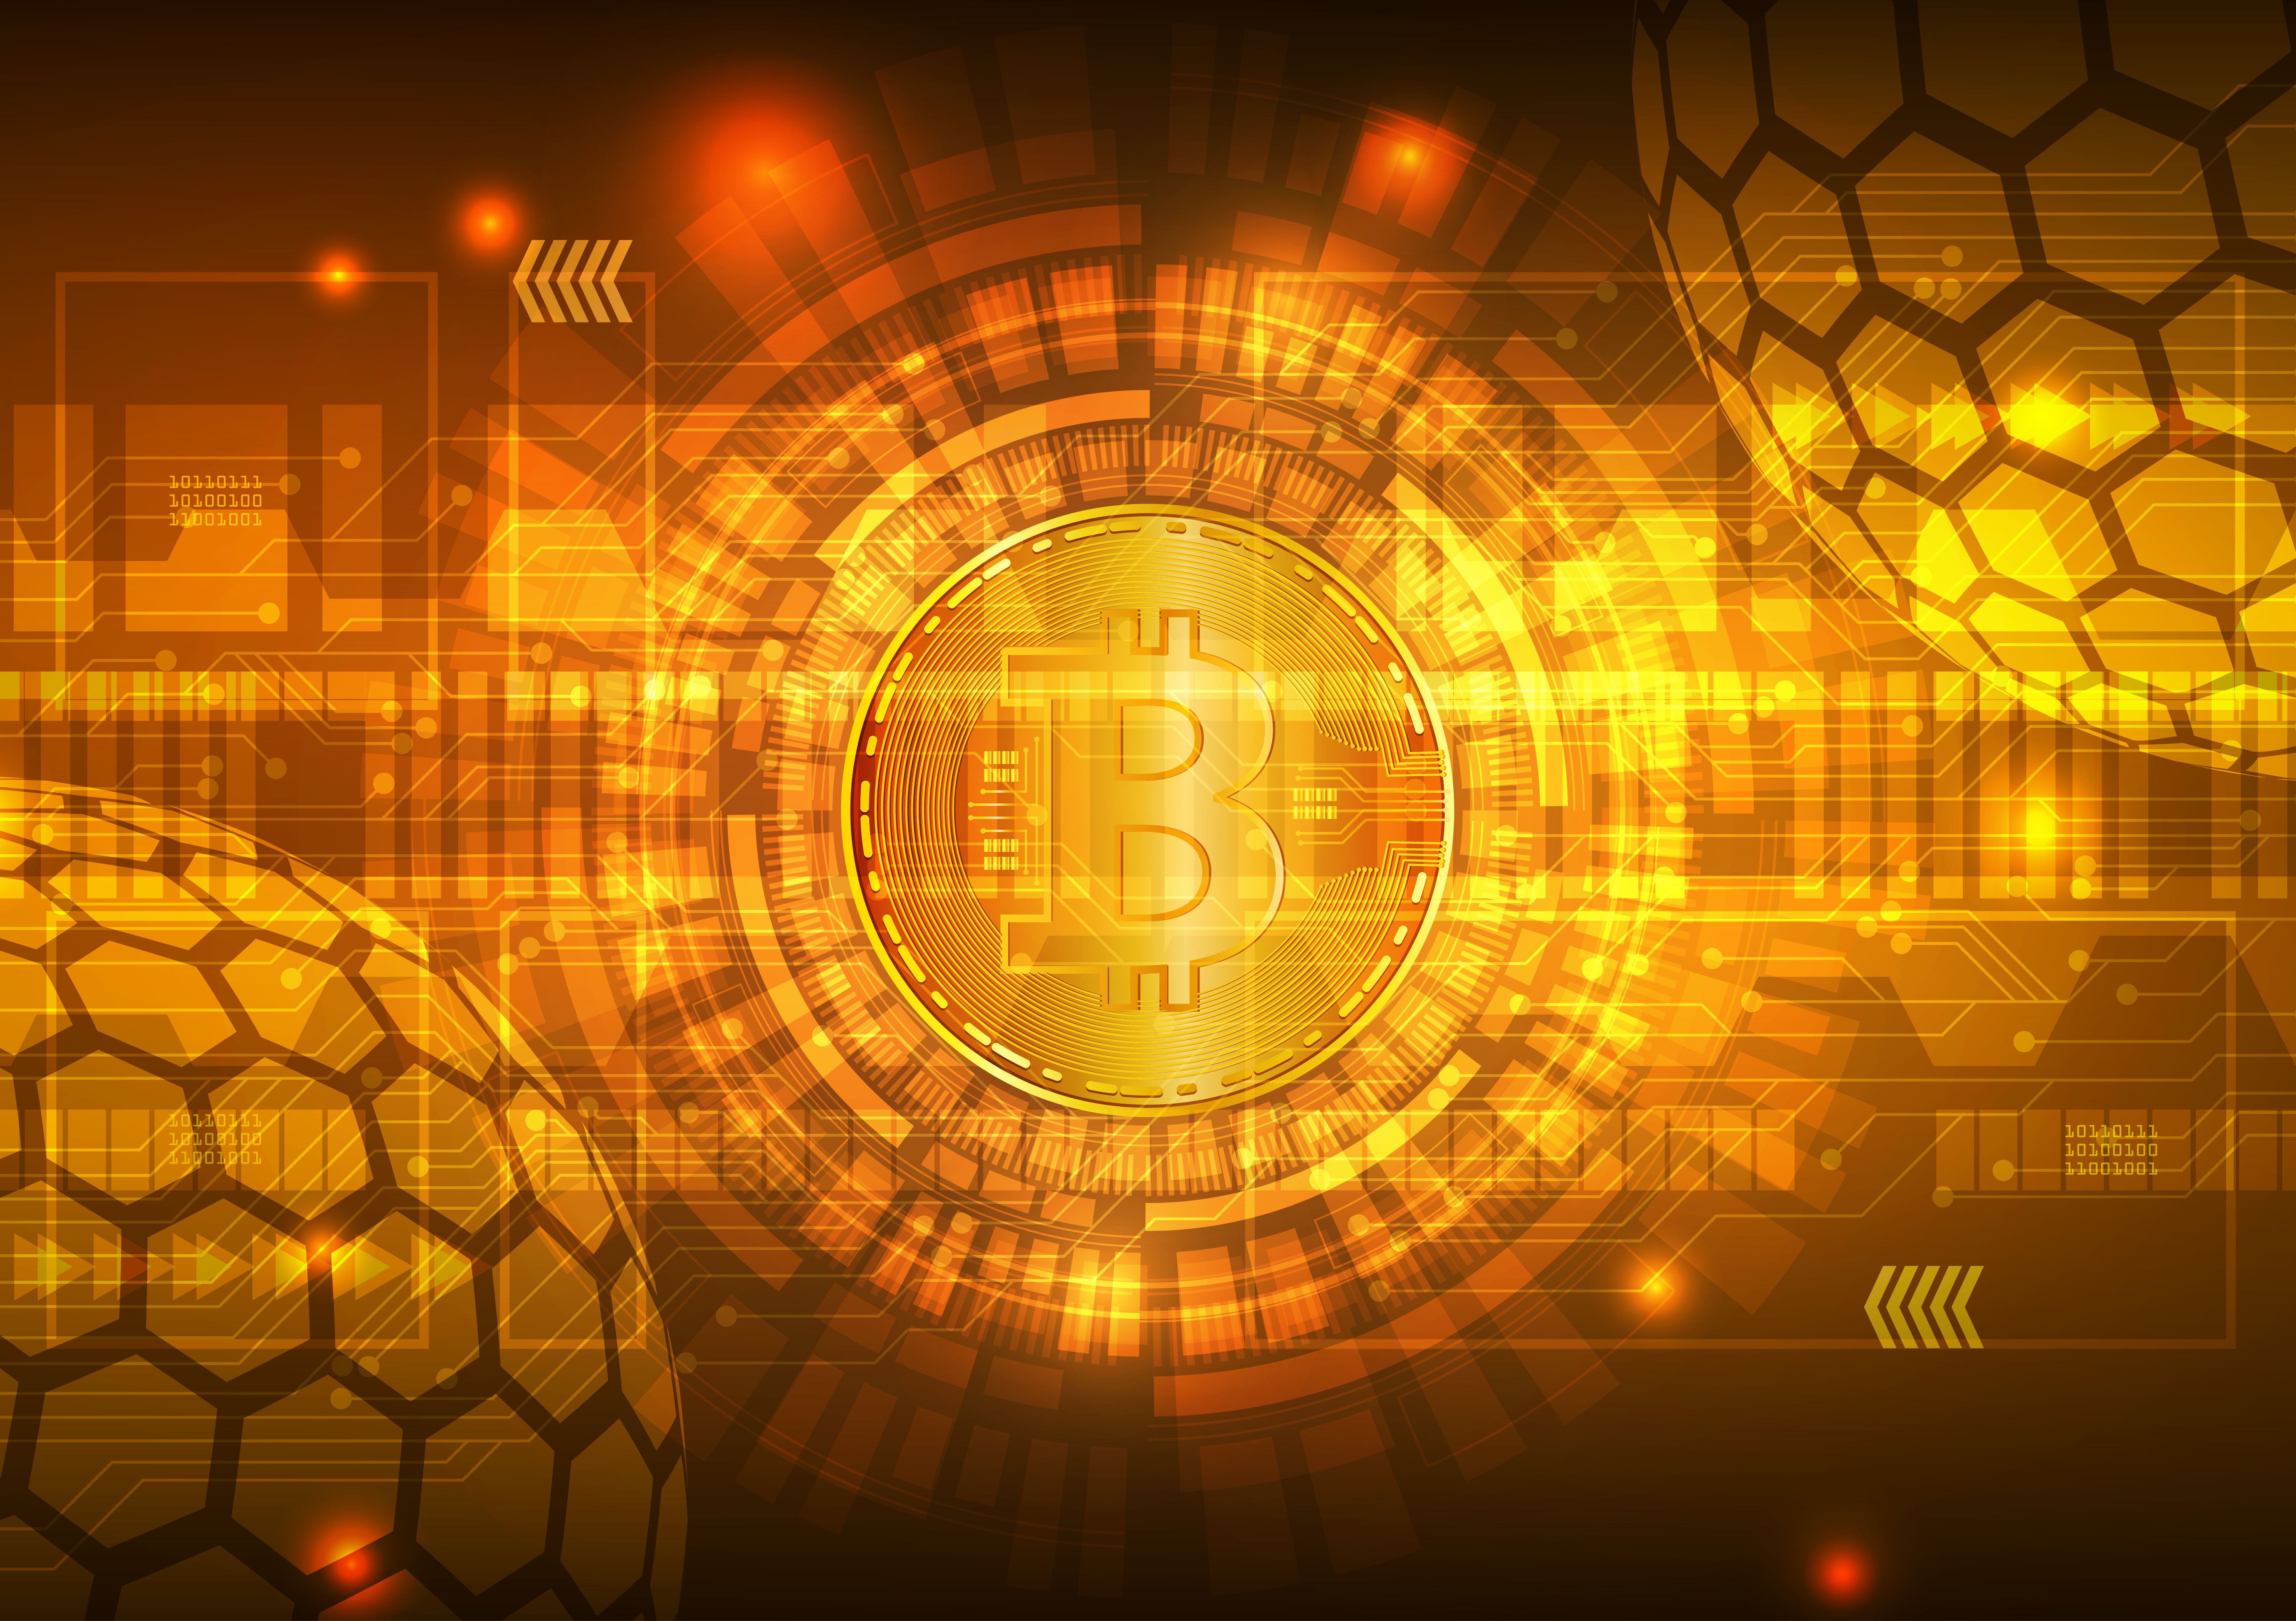 Abstract Technology Wallpaper Group With 78 Items: Bitcoin Digital Currency With Circuit Abstract Vector